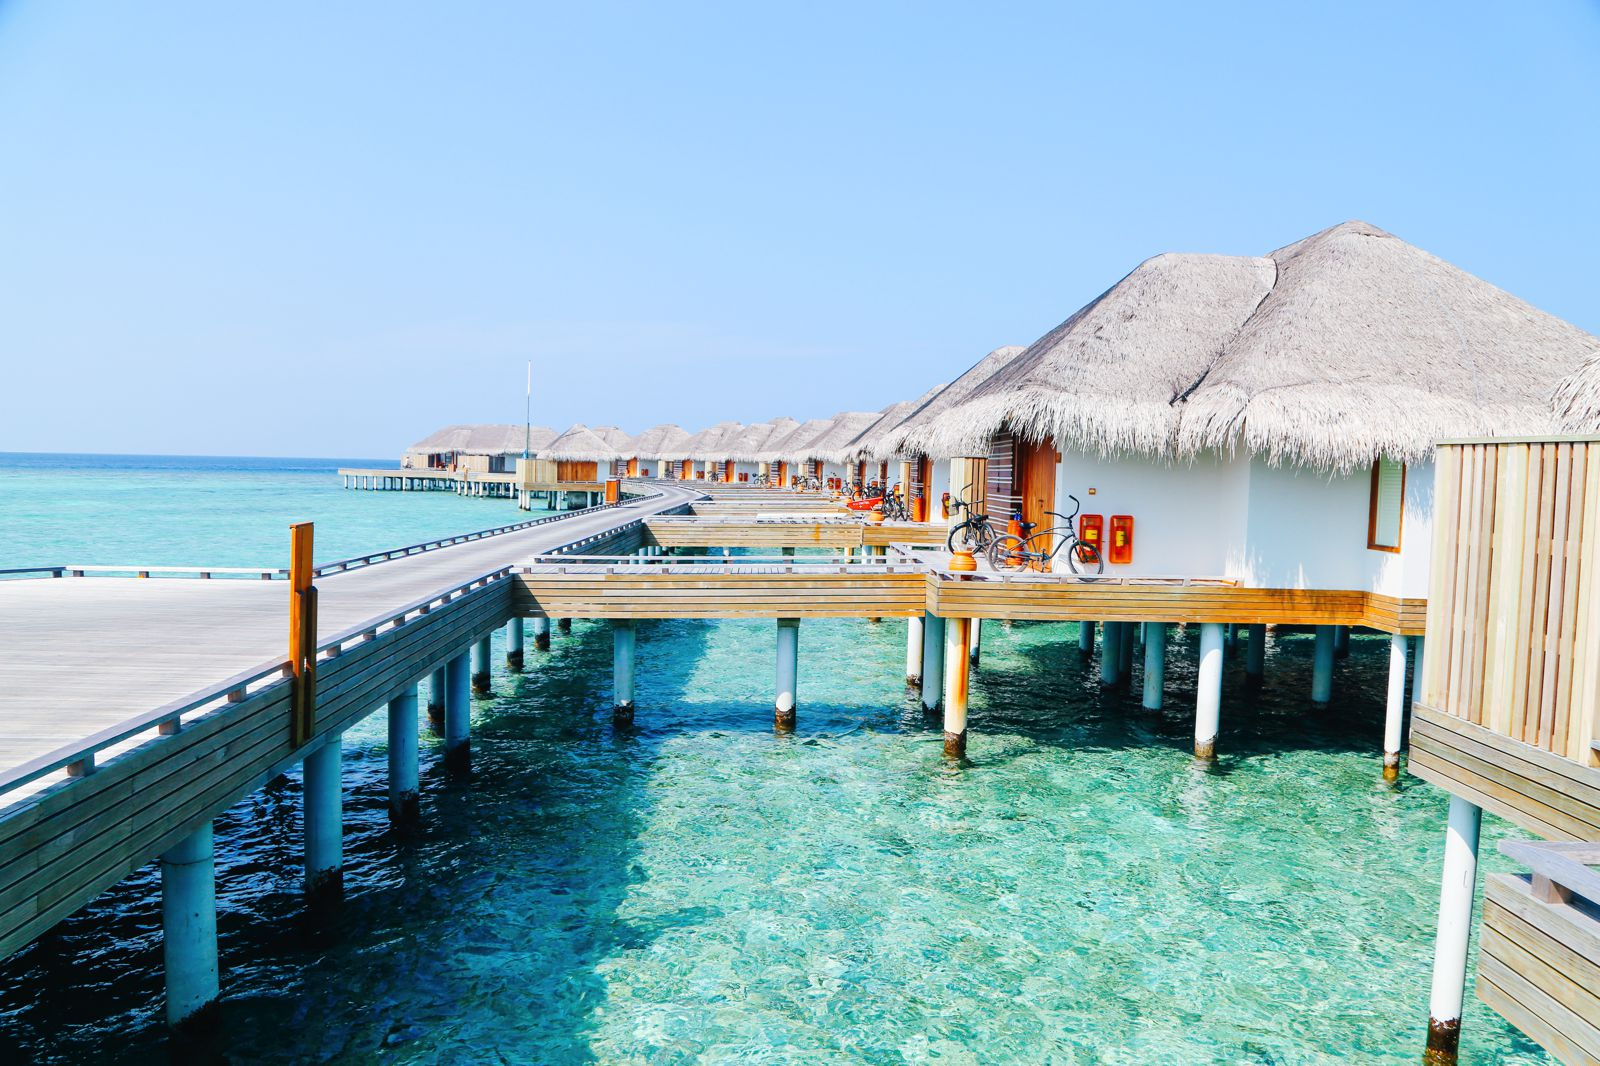 Arrival At The Dusit Thani In The Maldives! (38)